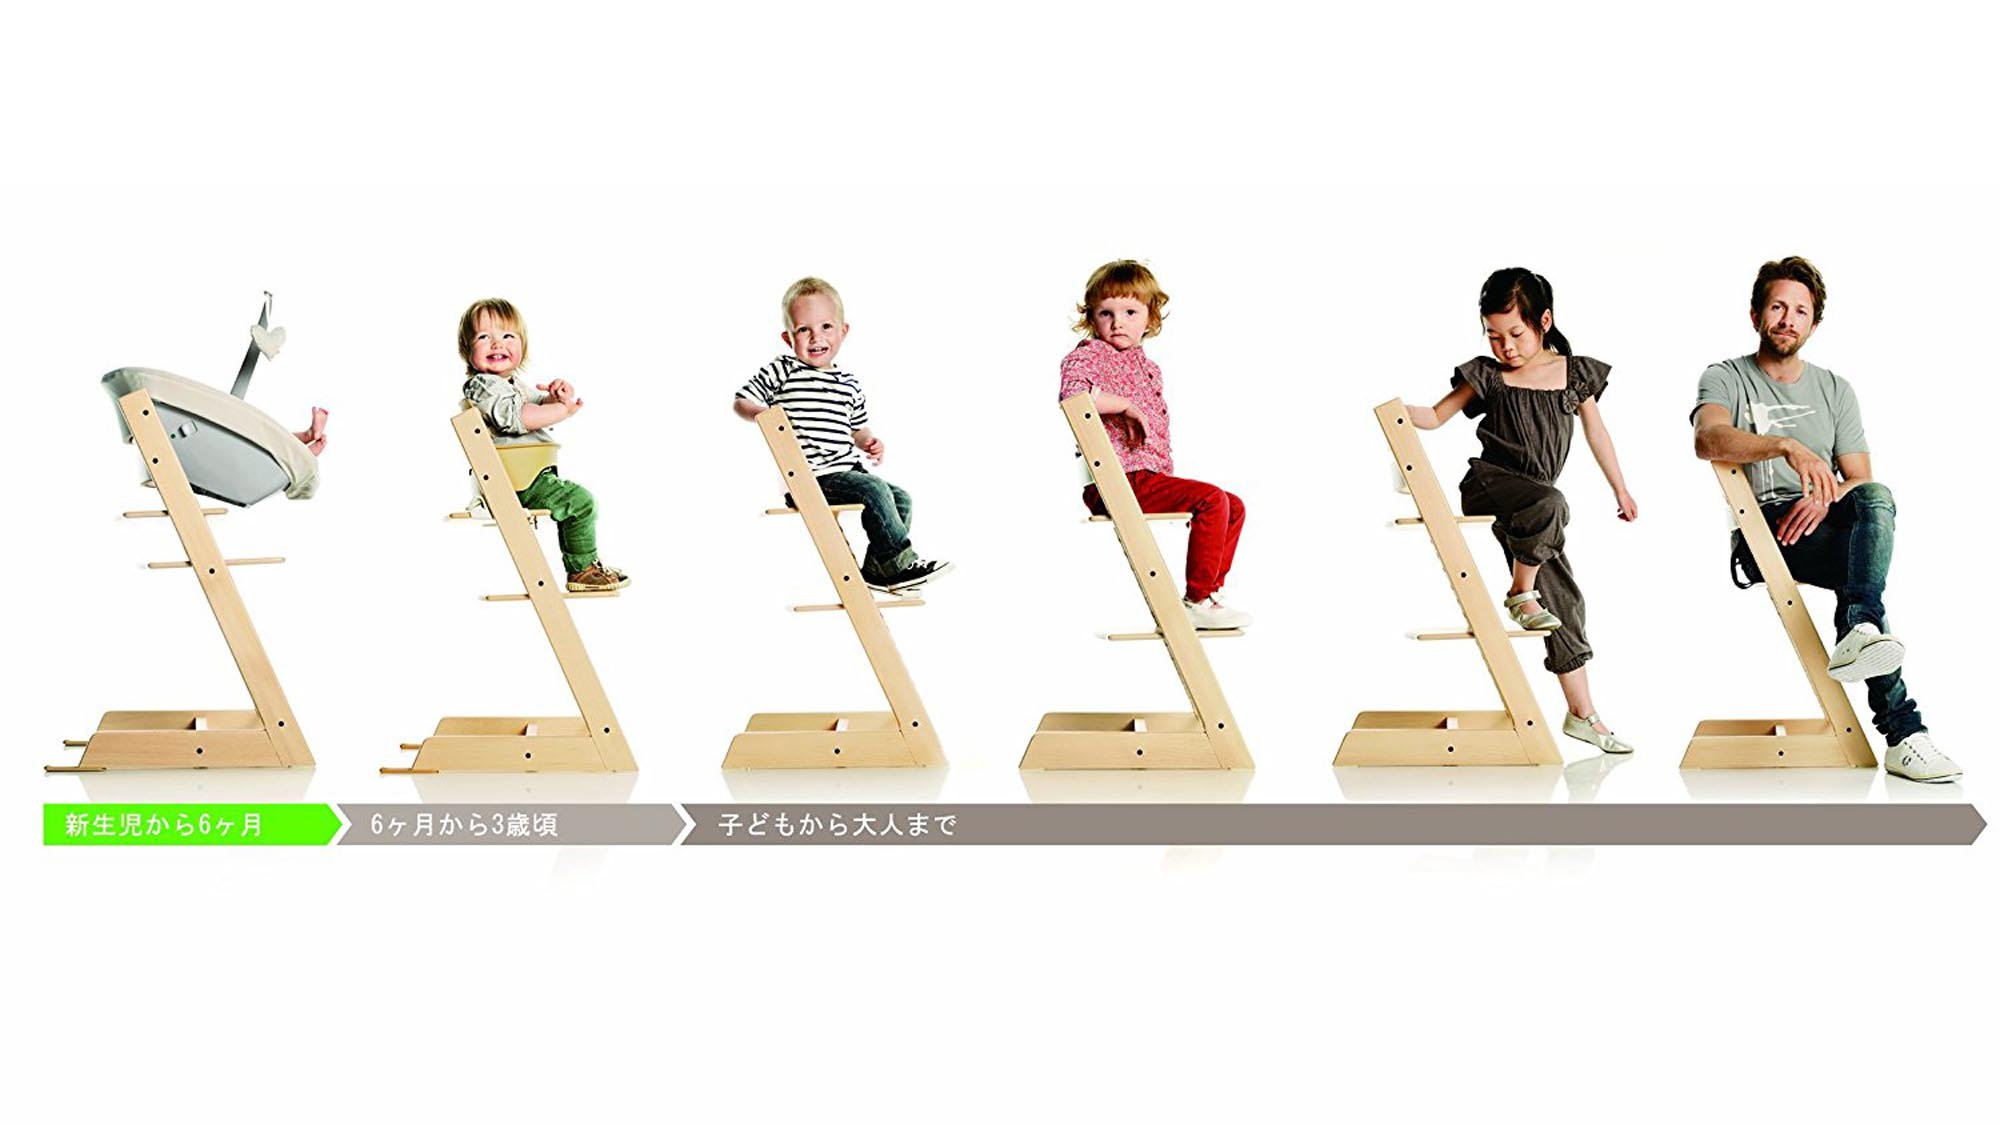 Stokke Tripp Trapp: The Best High Chair For Long Term Use